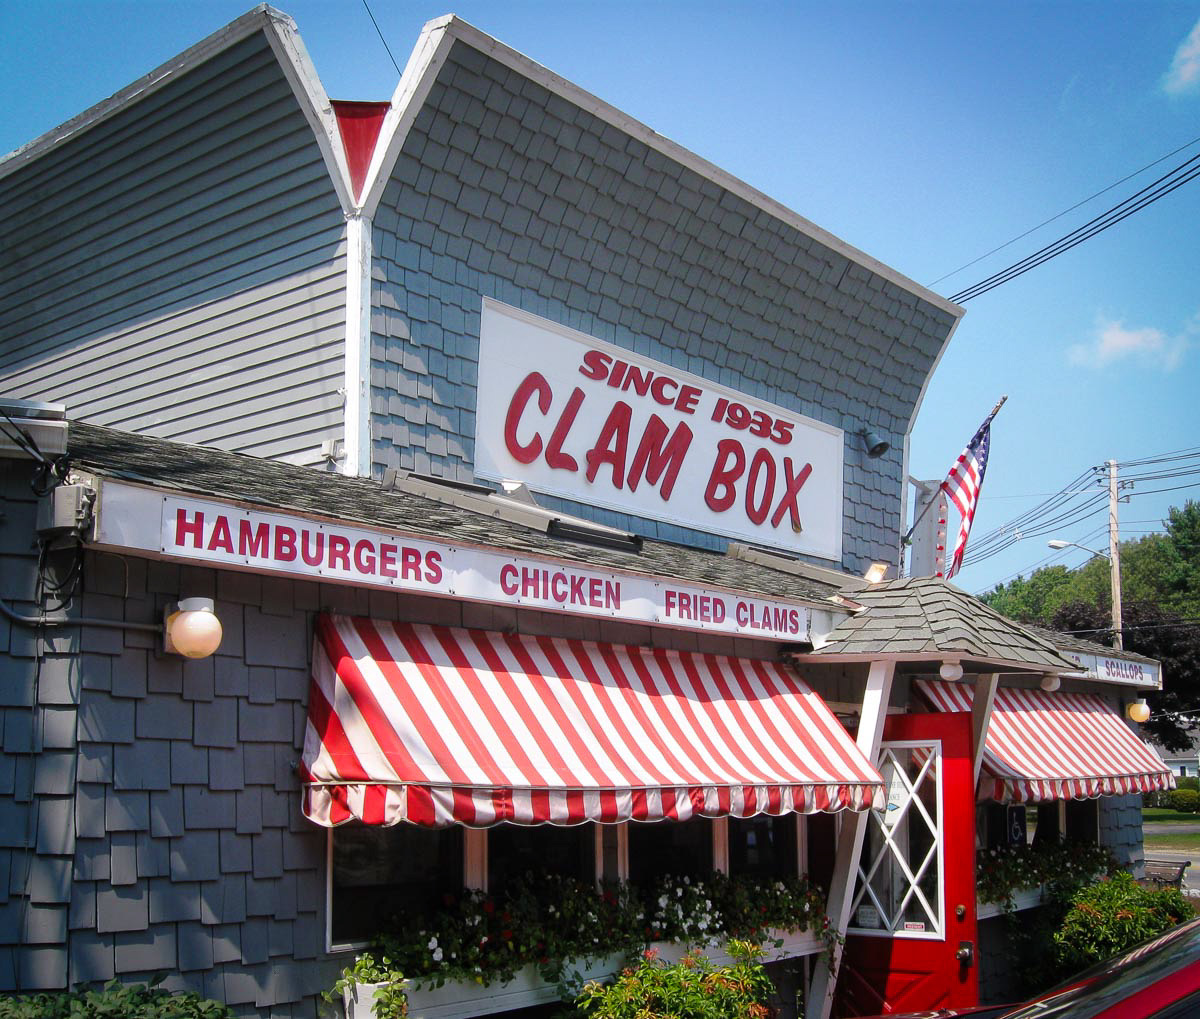 The Clam Box | Photo Credit: Ed [flickr]